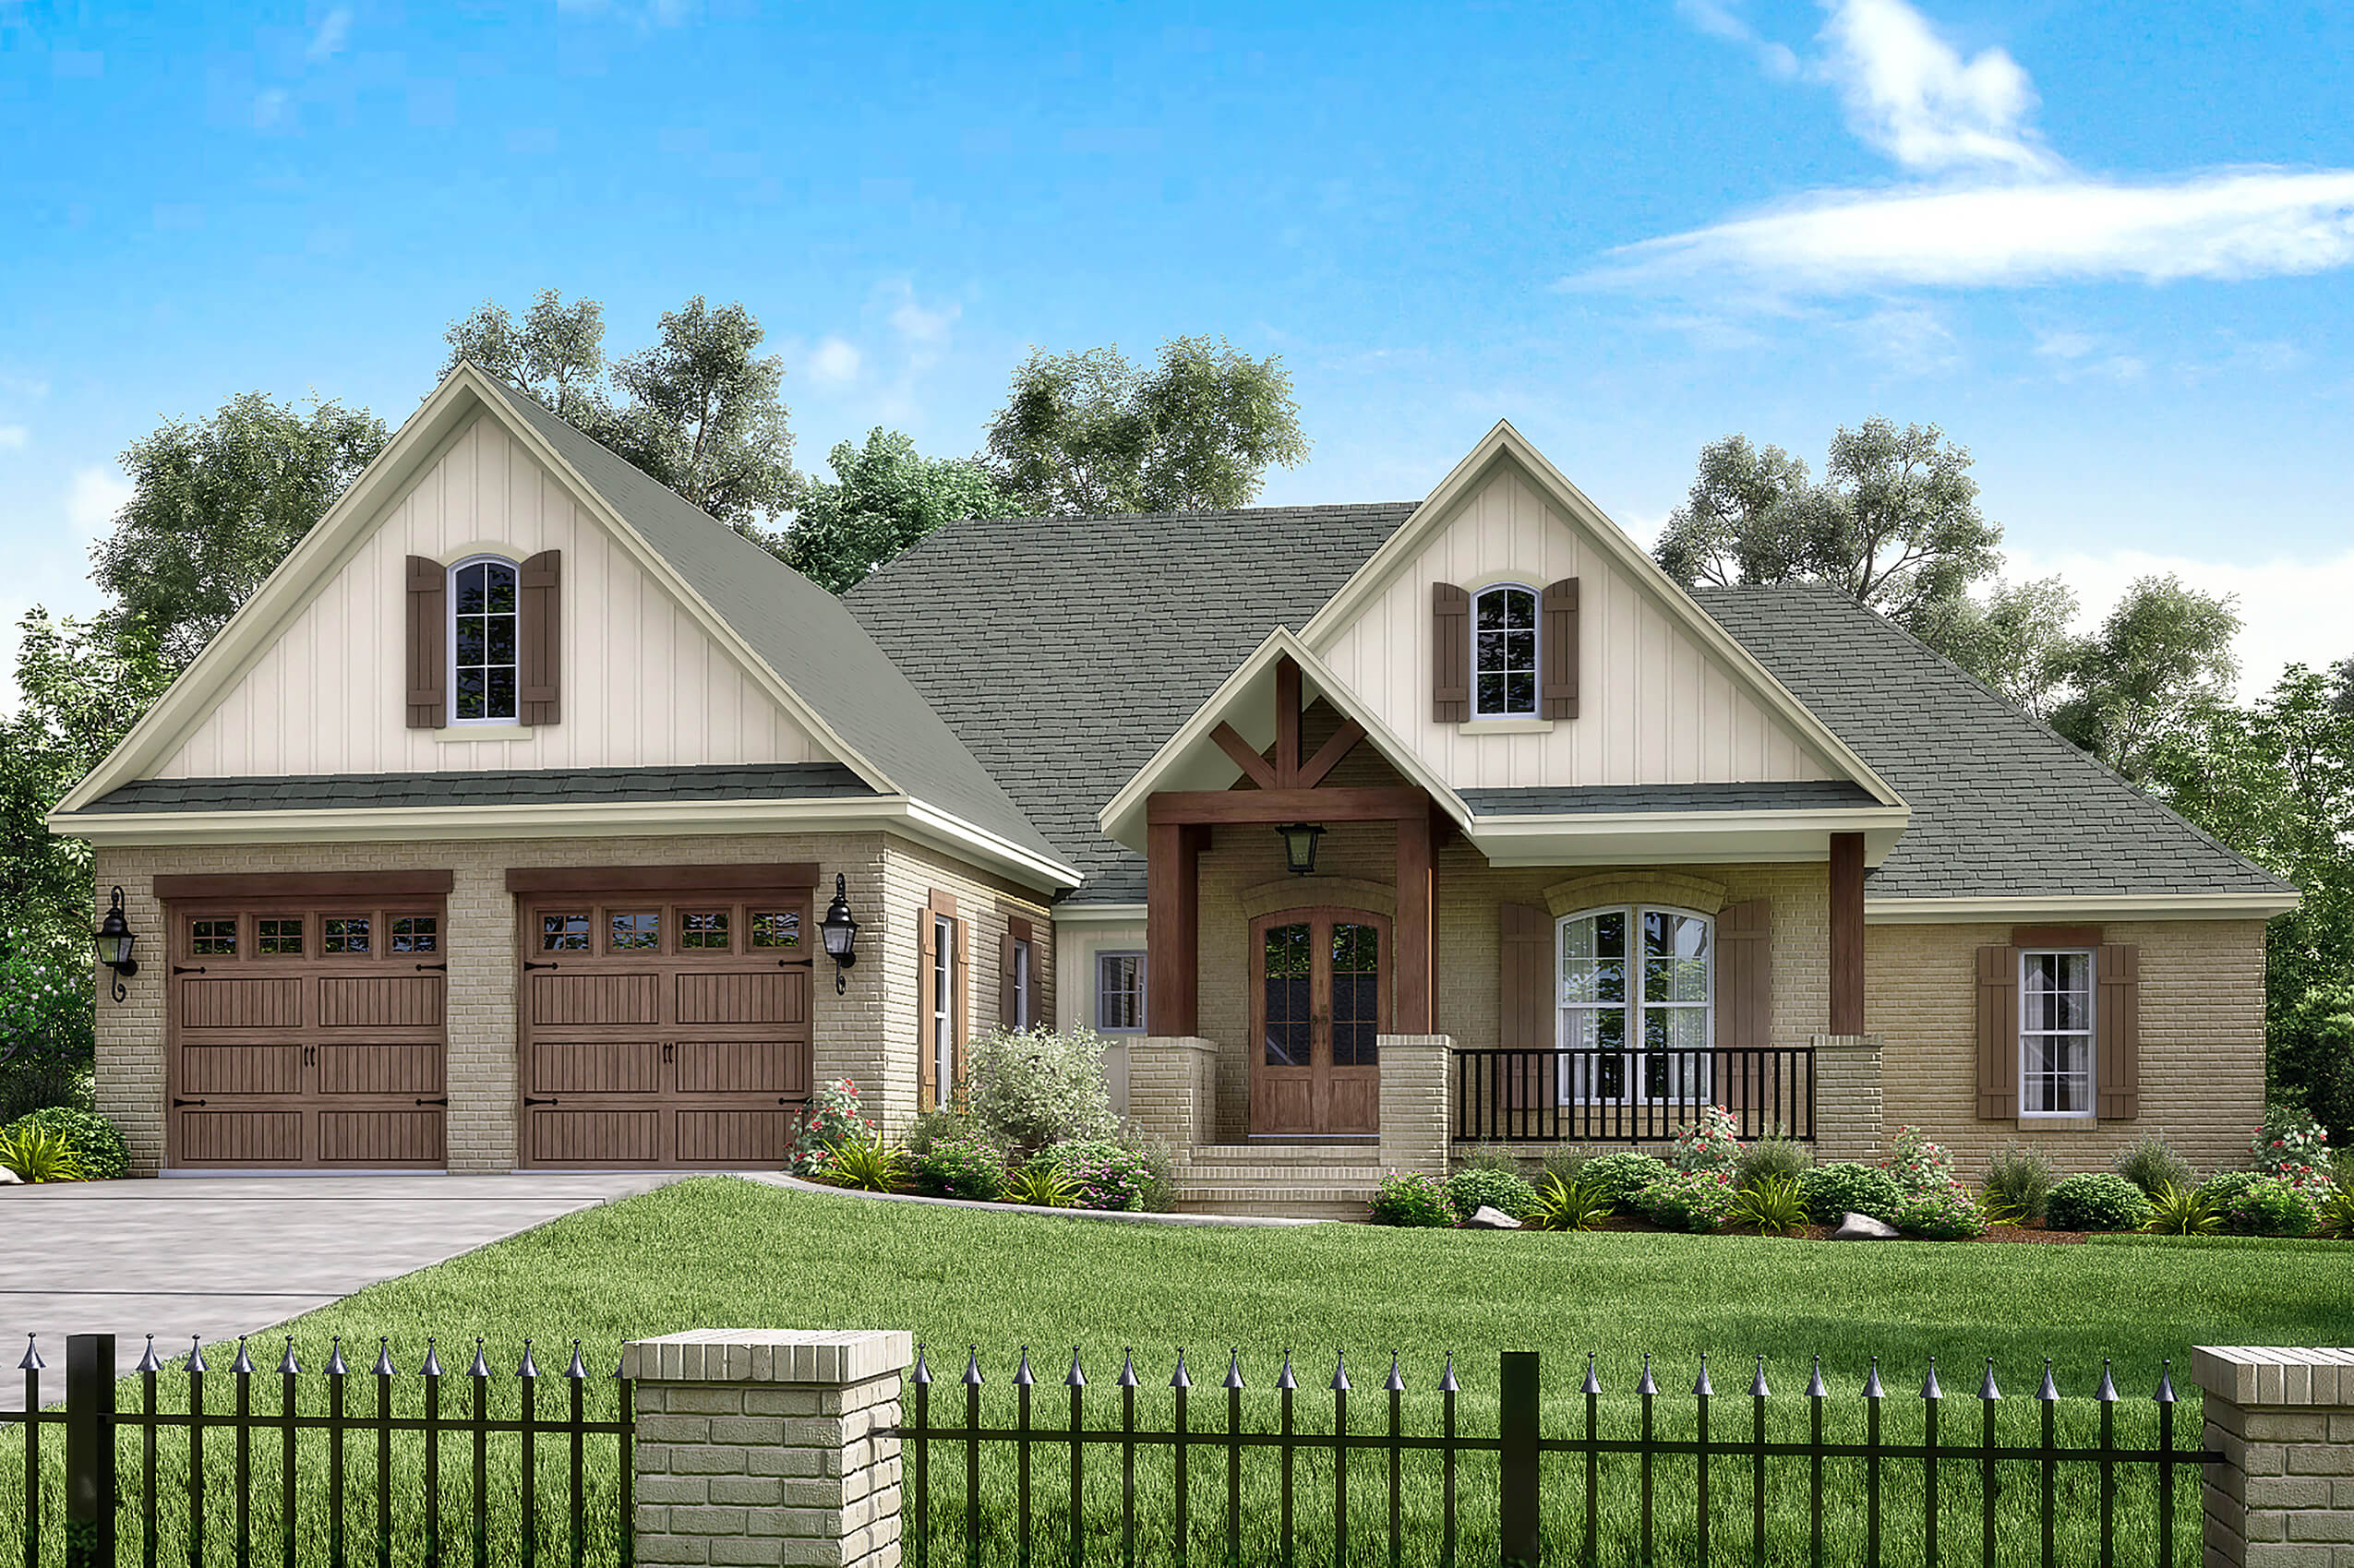 4 Bedrm, 2329 Sq Ft Traditional House Plan #142-1174